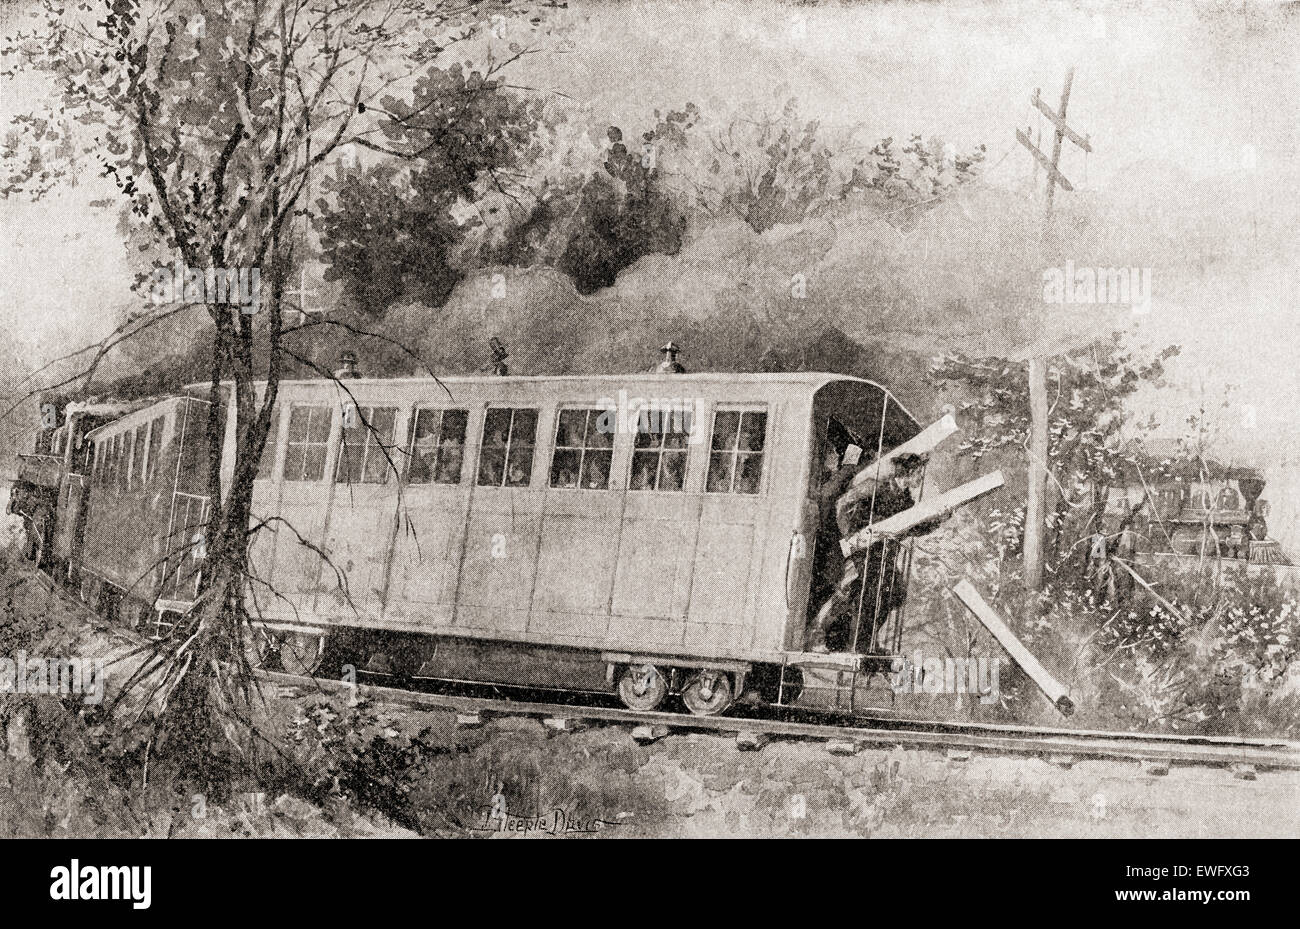 The Great Locomotive Chase or Andrews' Raid , a military raid that occurred April 12, 1862, in northern Georgia - Stock Image